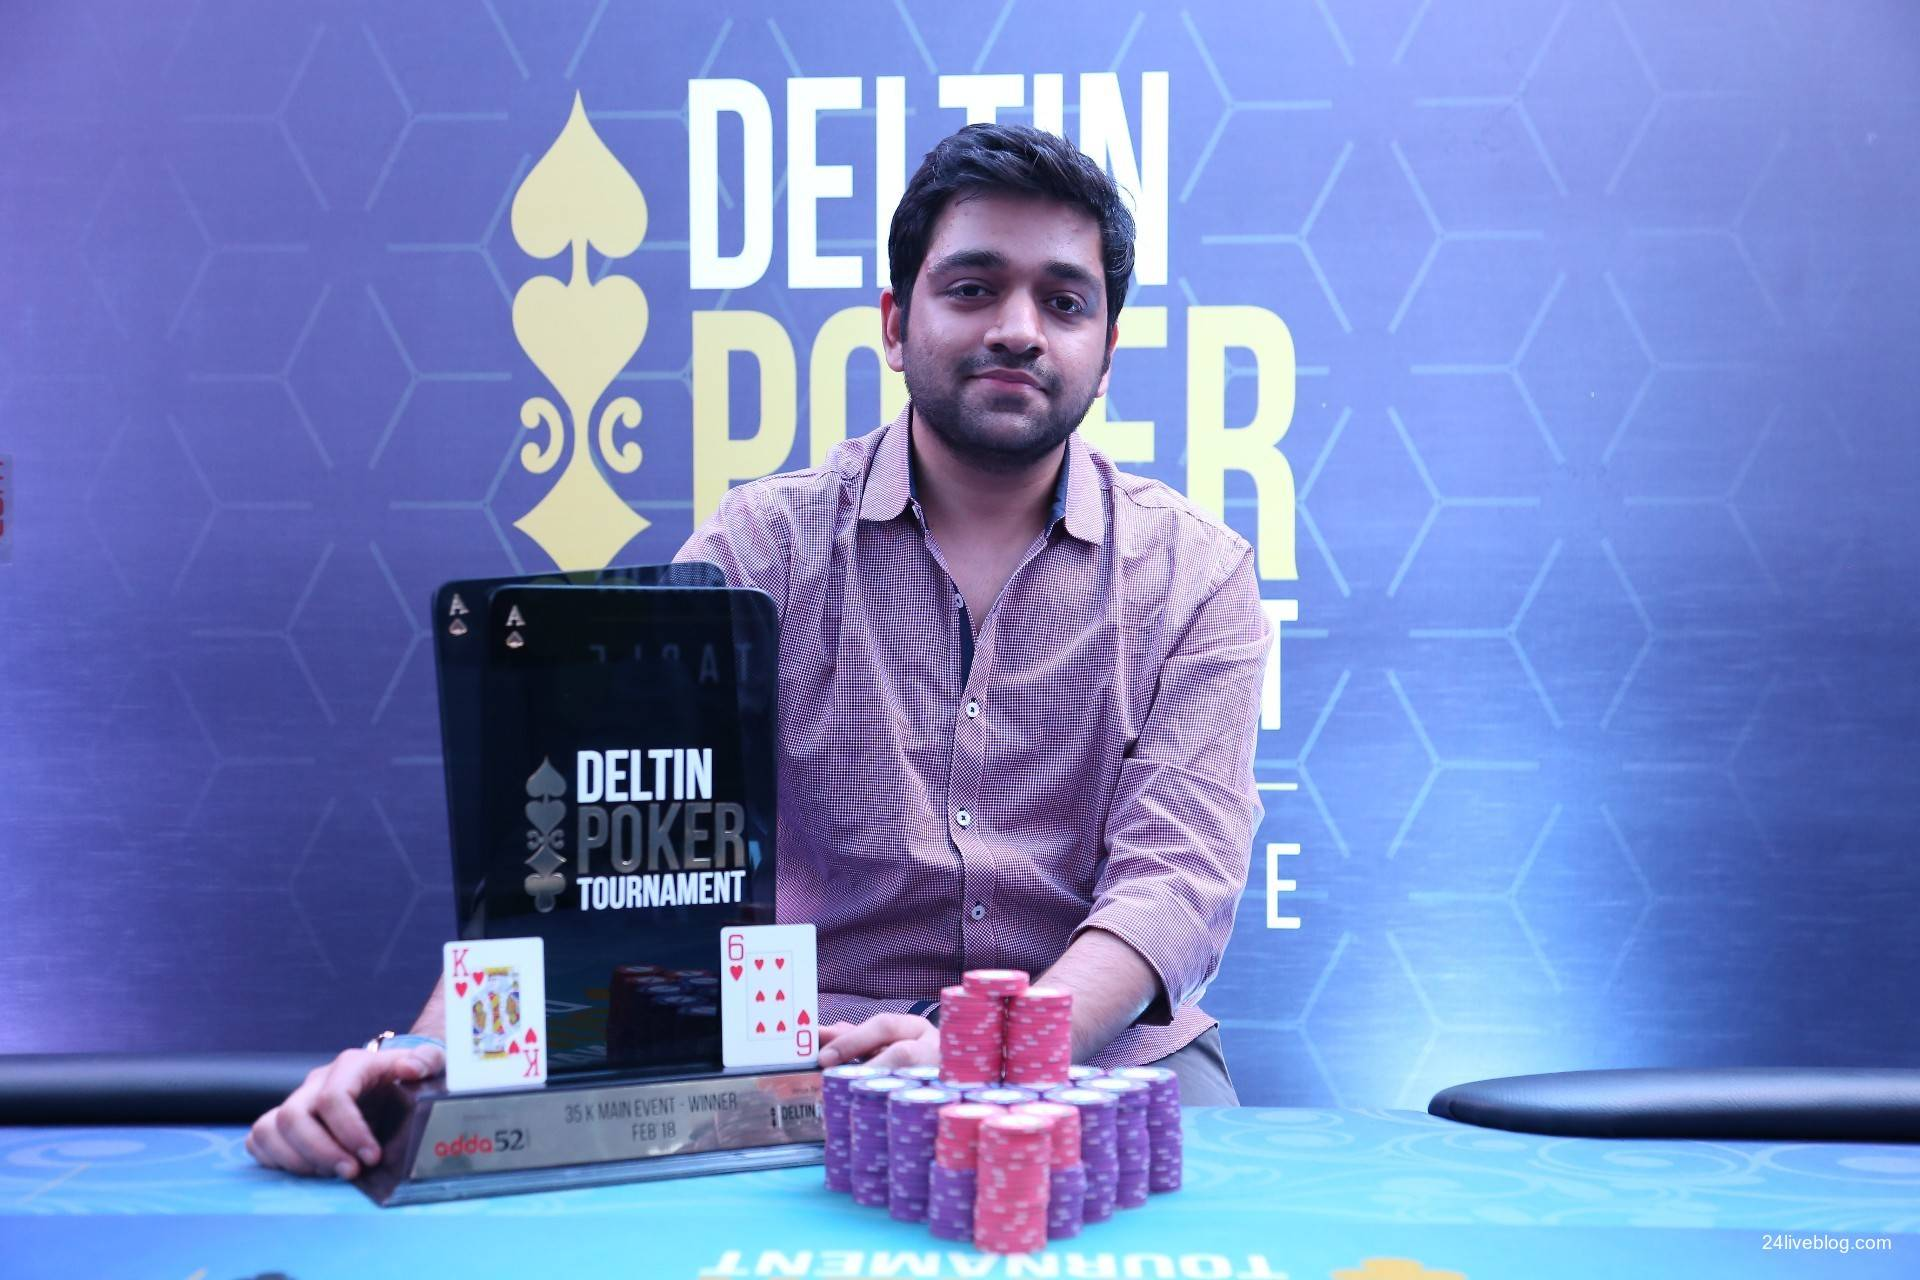 Deltin Poker Tournament: Dainik Mehta captures the Main Event; Alok Birewar wins High Rollers, Muskan Sethi in 5th